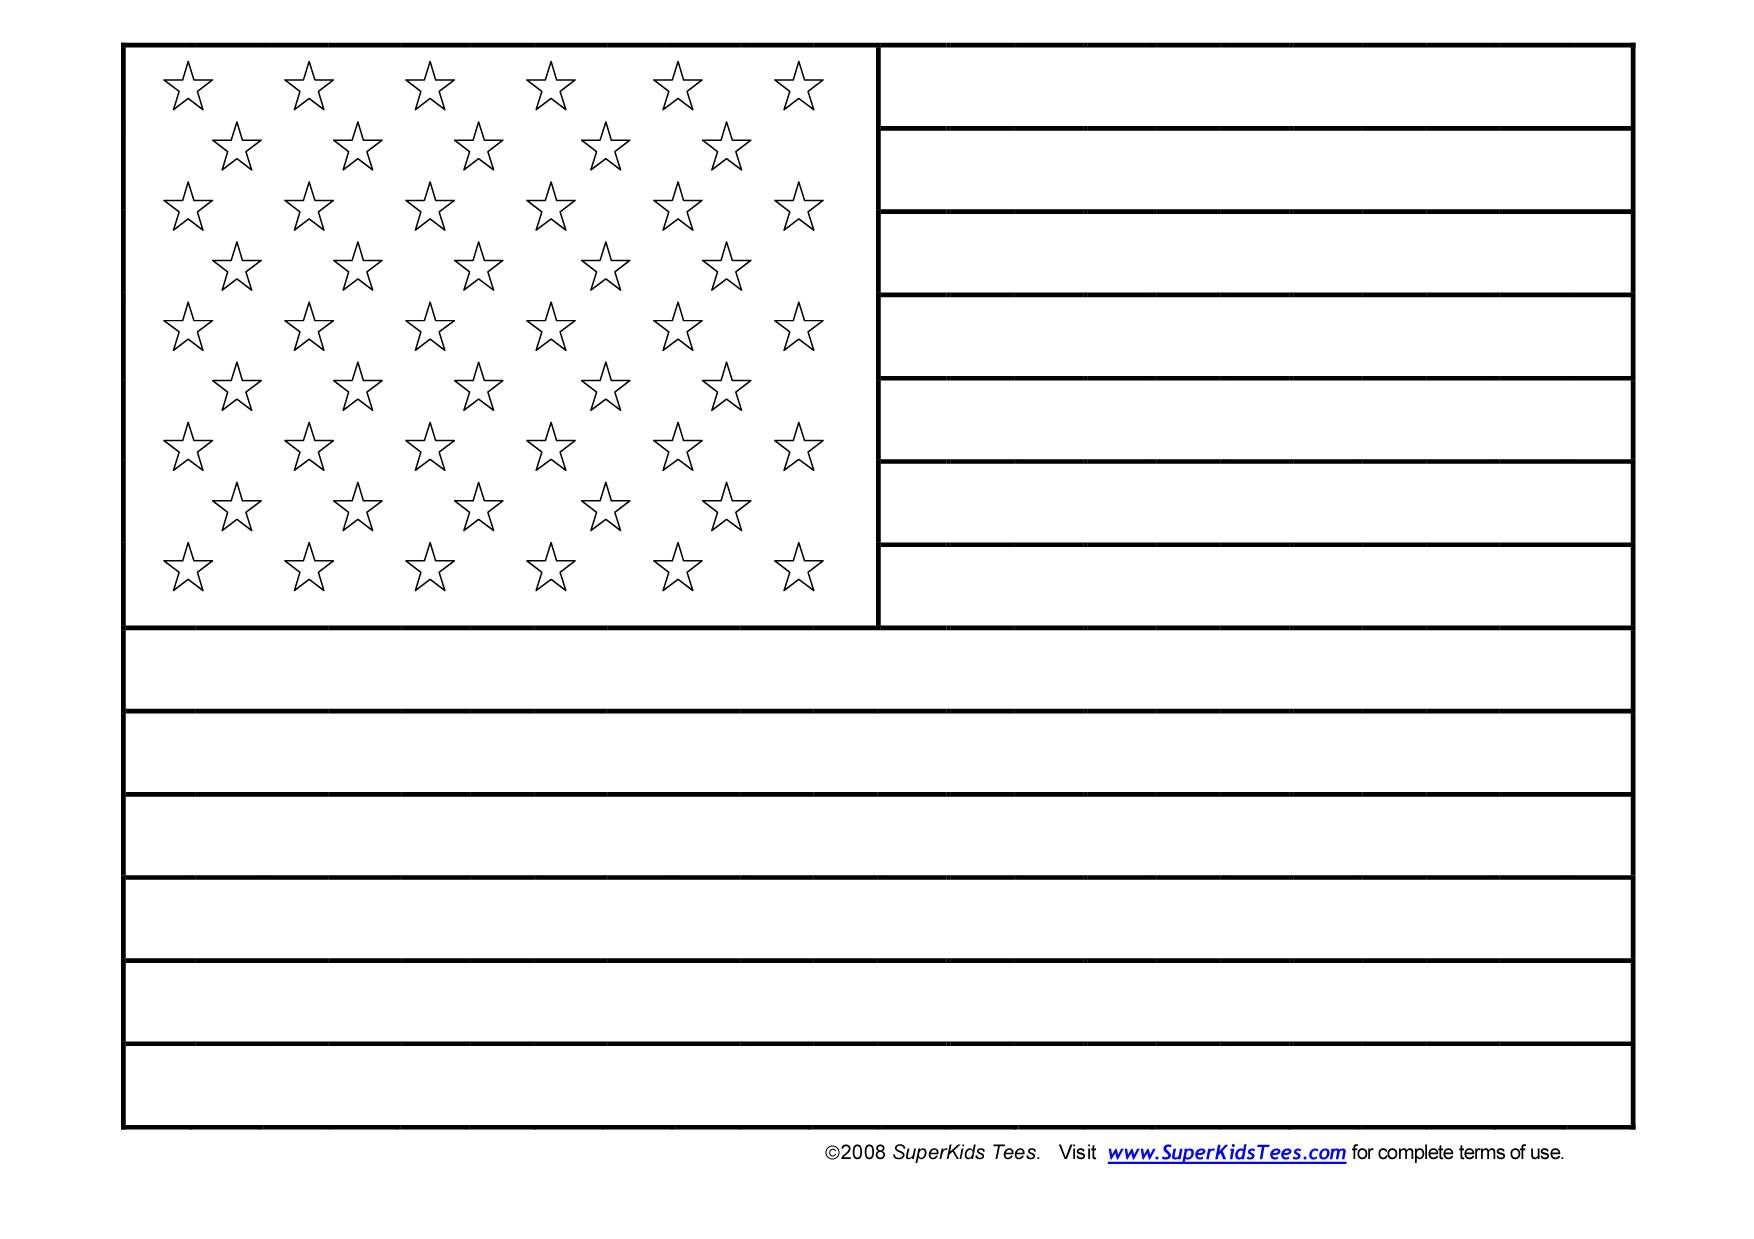 Flag Coloring Pages - Free Large Images Flag Coloring Pages